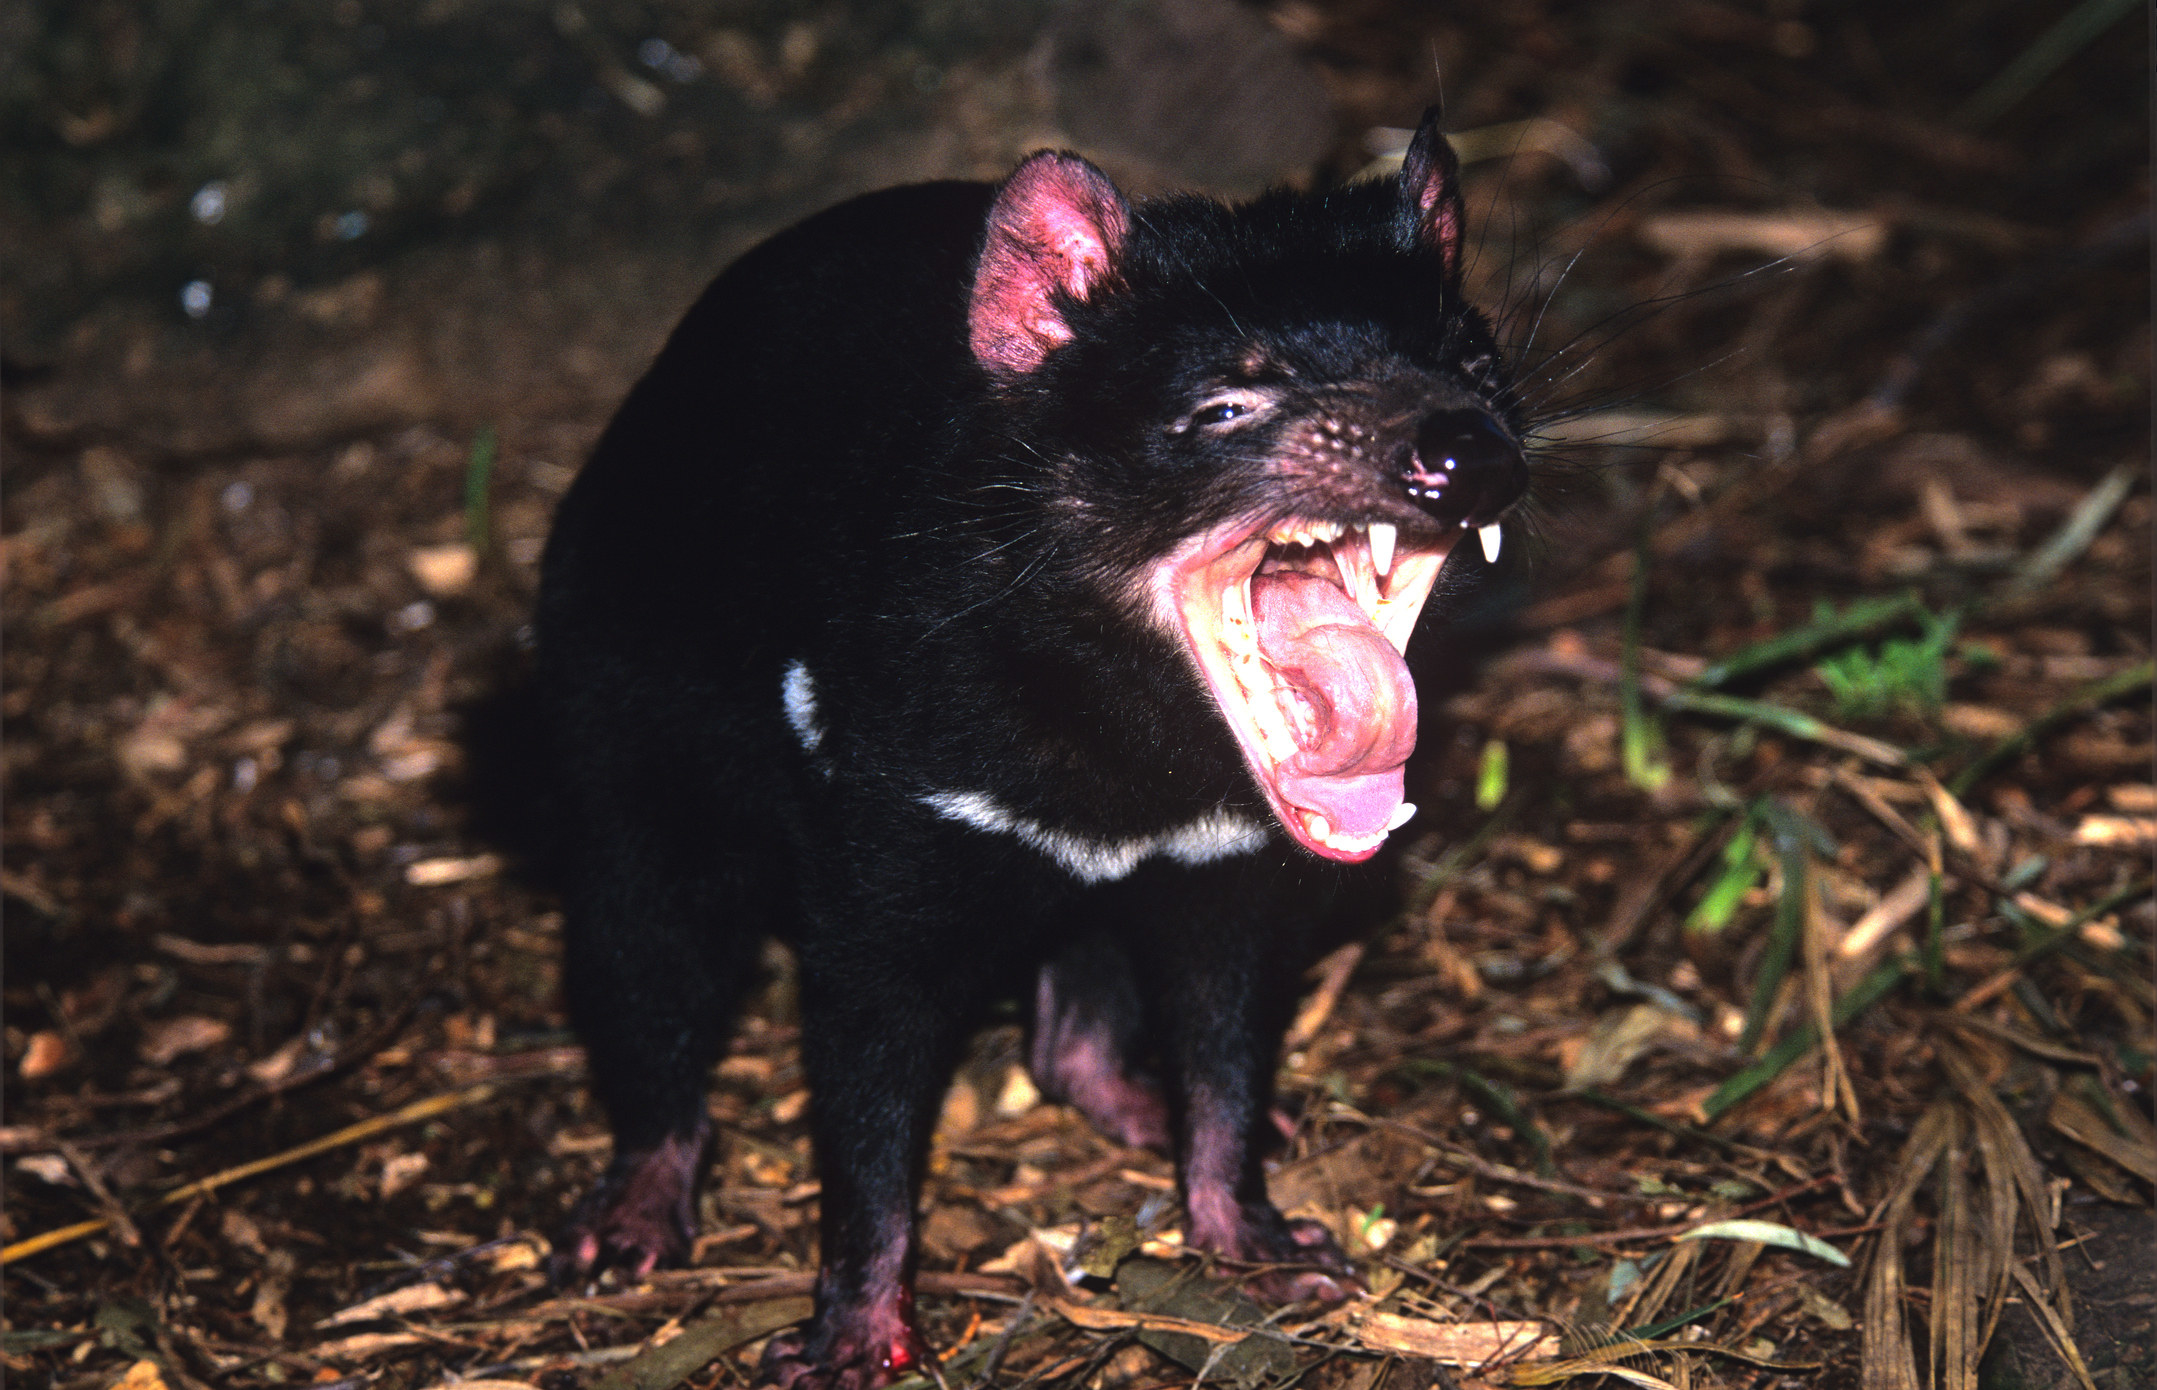 A Tasmanian devil opening its jaw and showing its sharp teeth